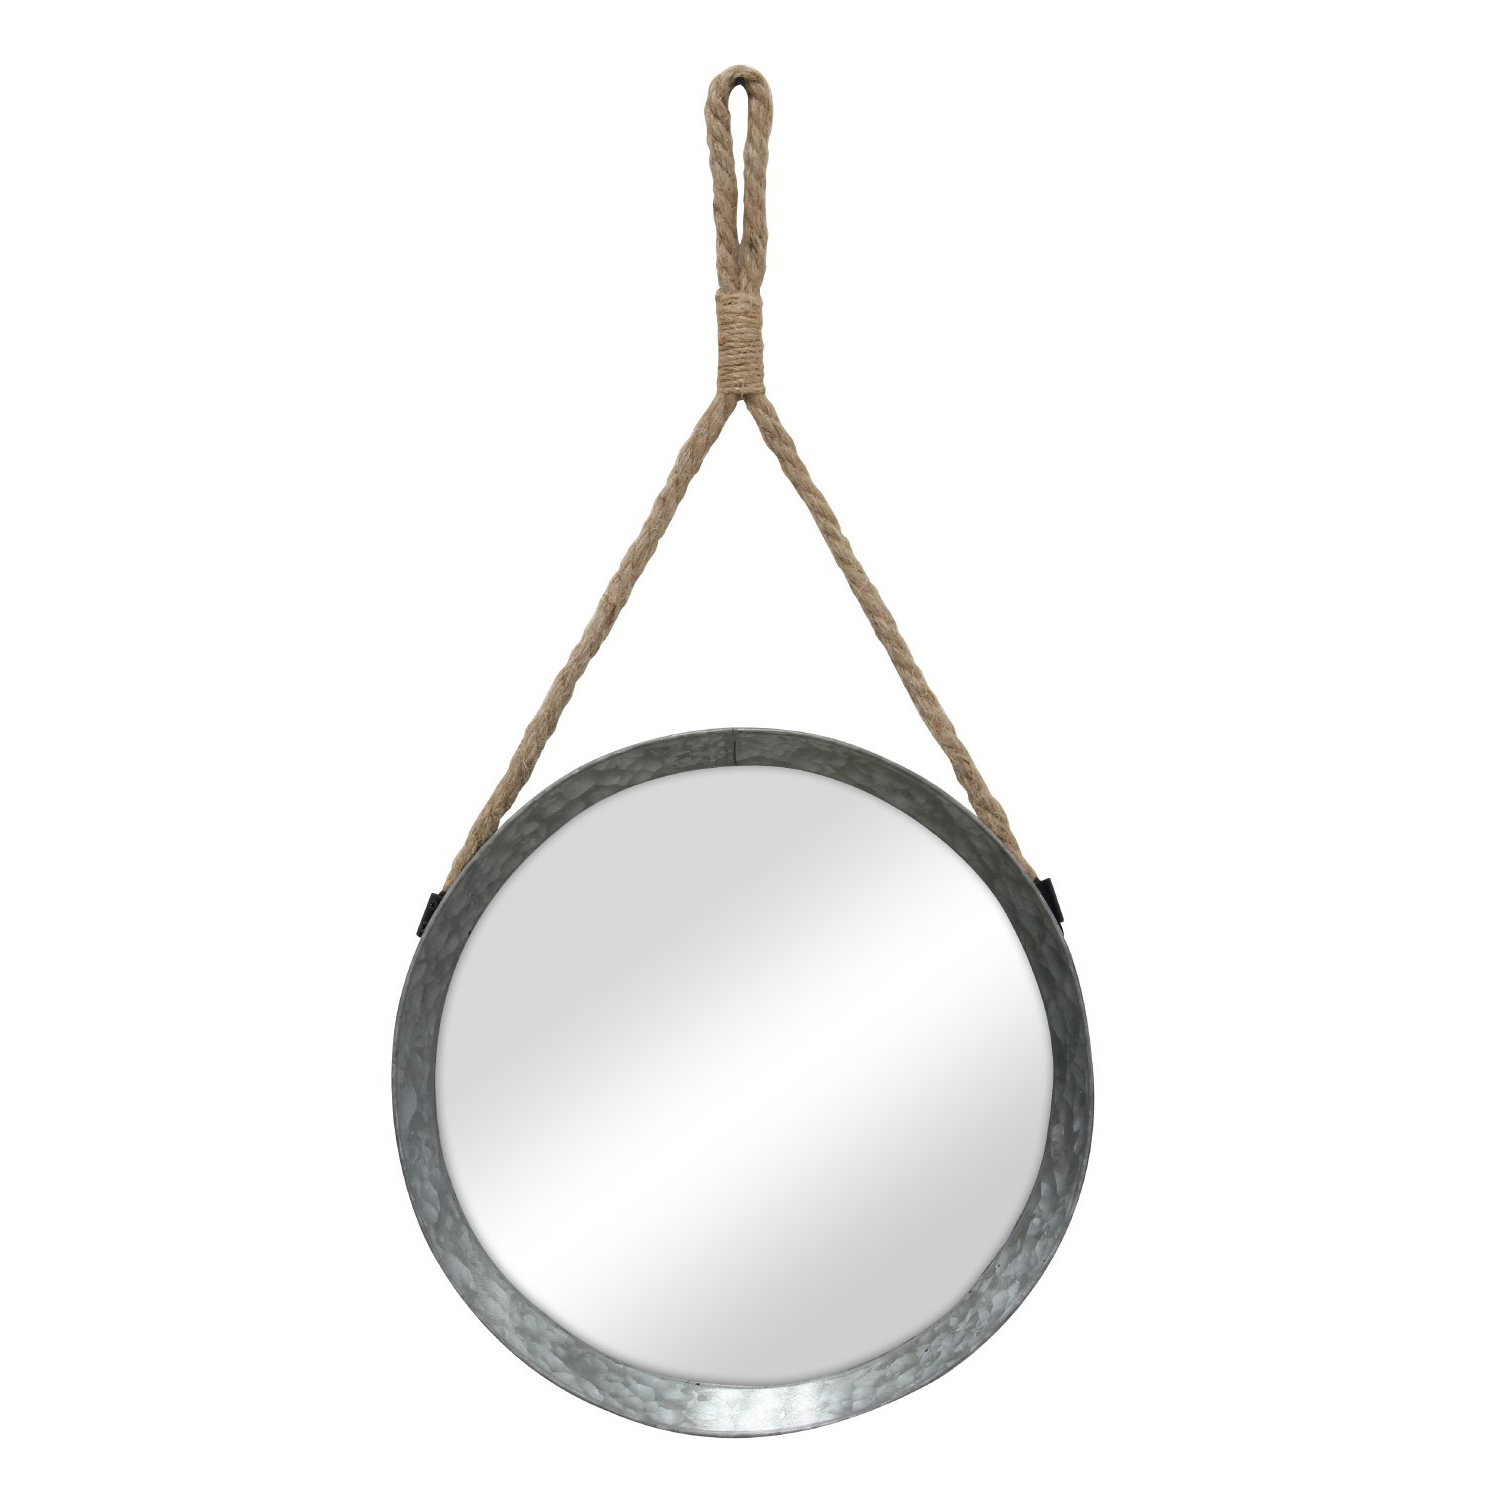 Round Galvanized Metallic Wall Mirrors Inside 2019 Stonebriar Rustic Round Galvanized Metal Mirror With Rope Hanging Loop ; Farmhouse Home Decor ; For Bathroom, Bedroom, And Living Room (View 15 of 20)